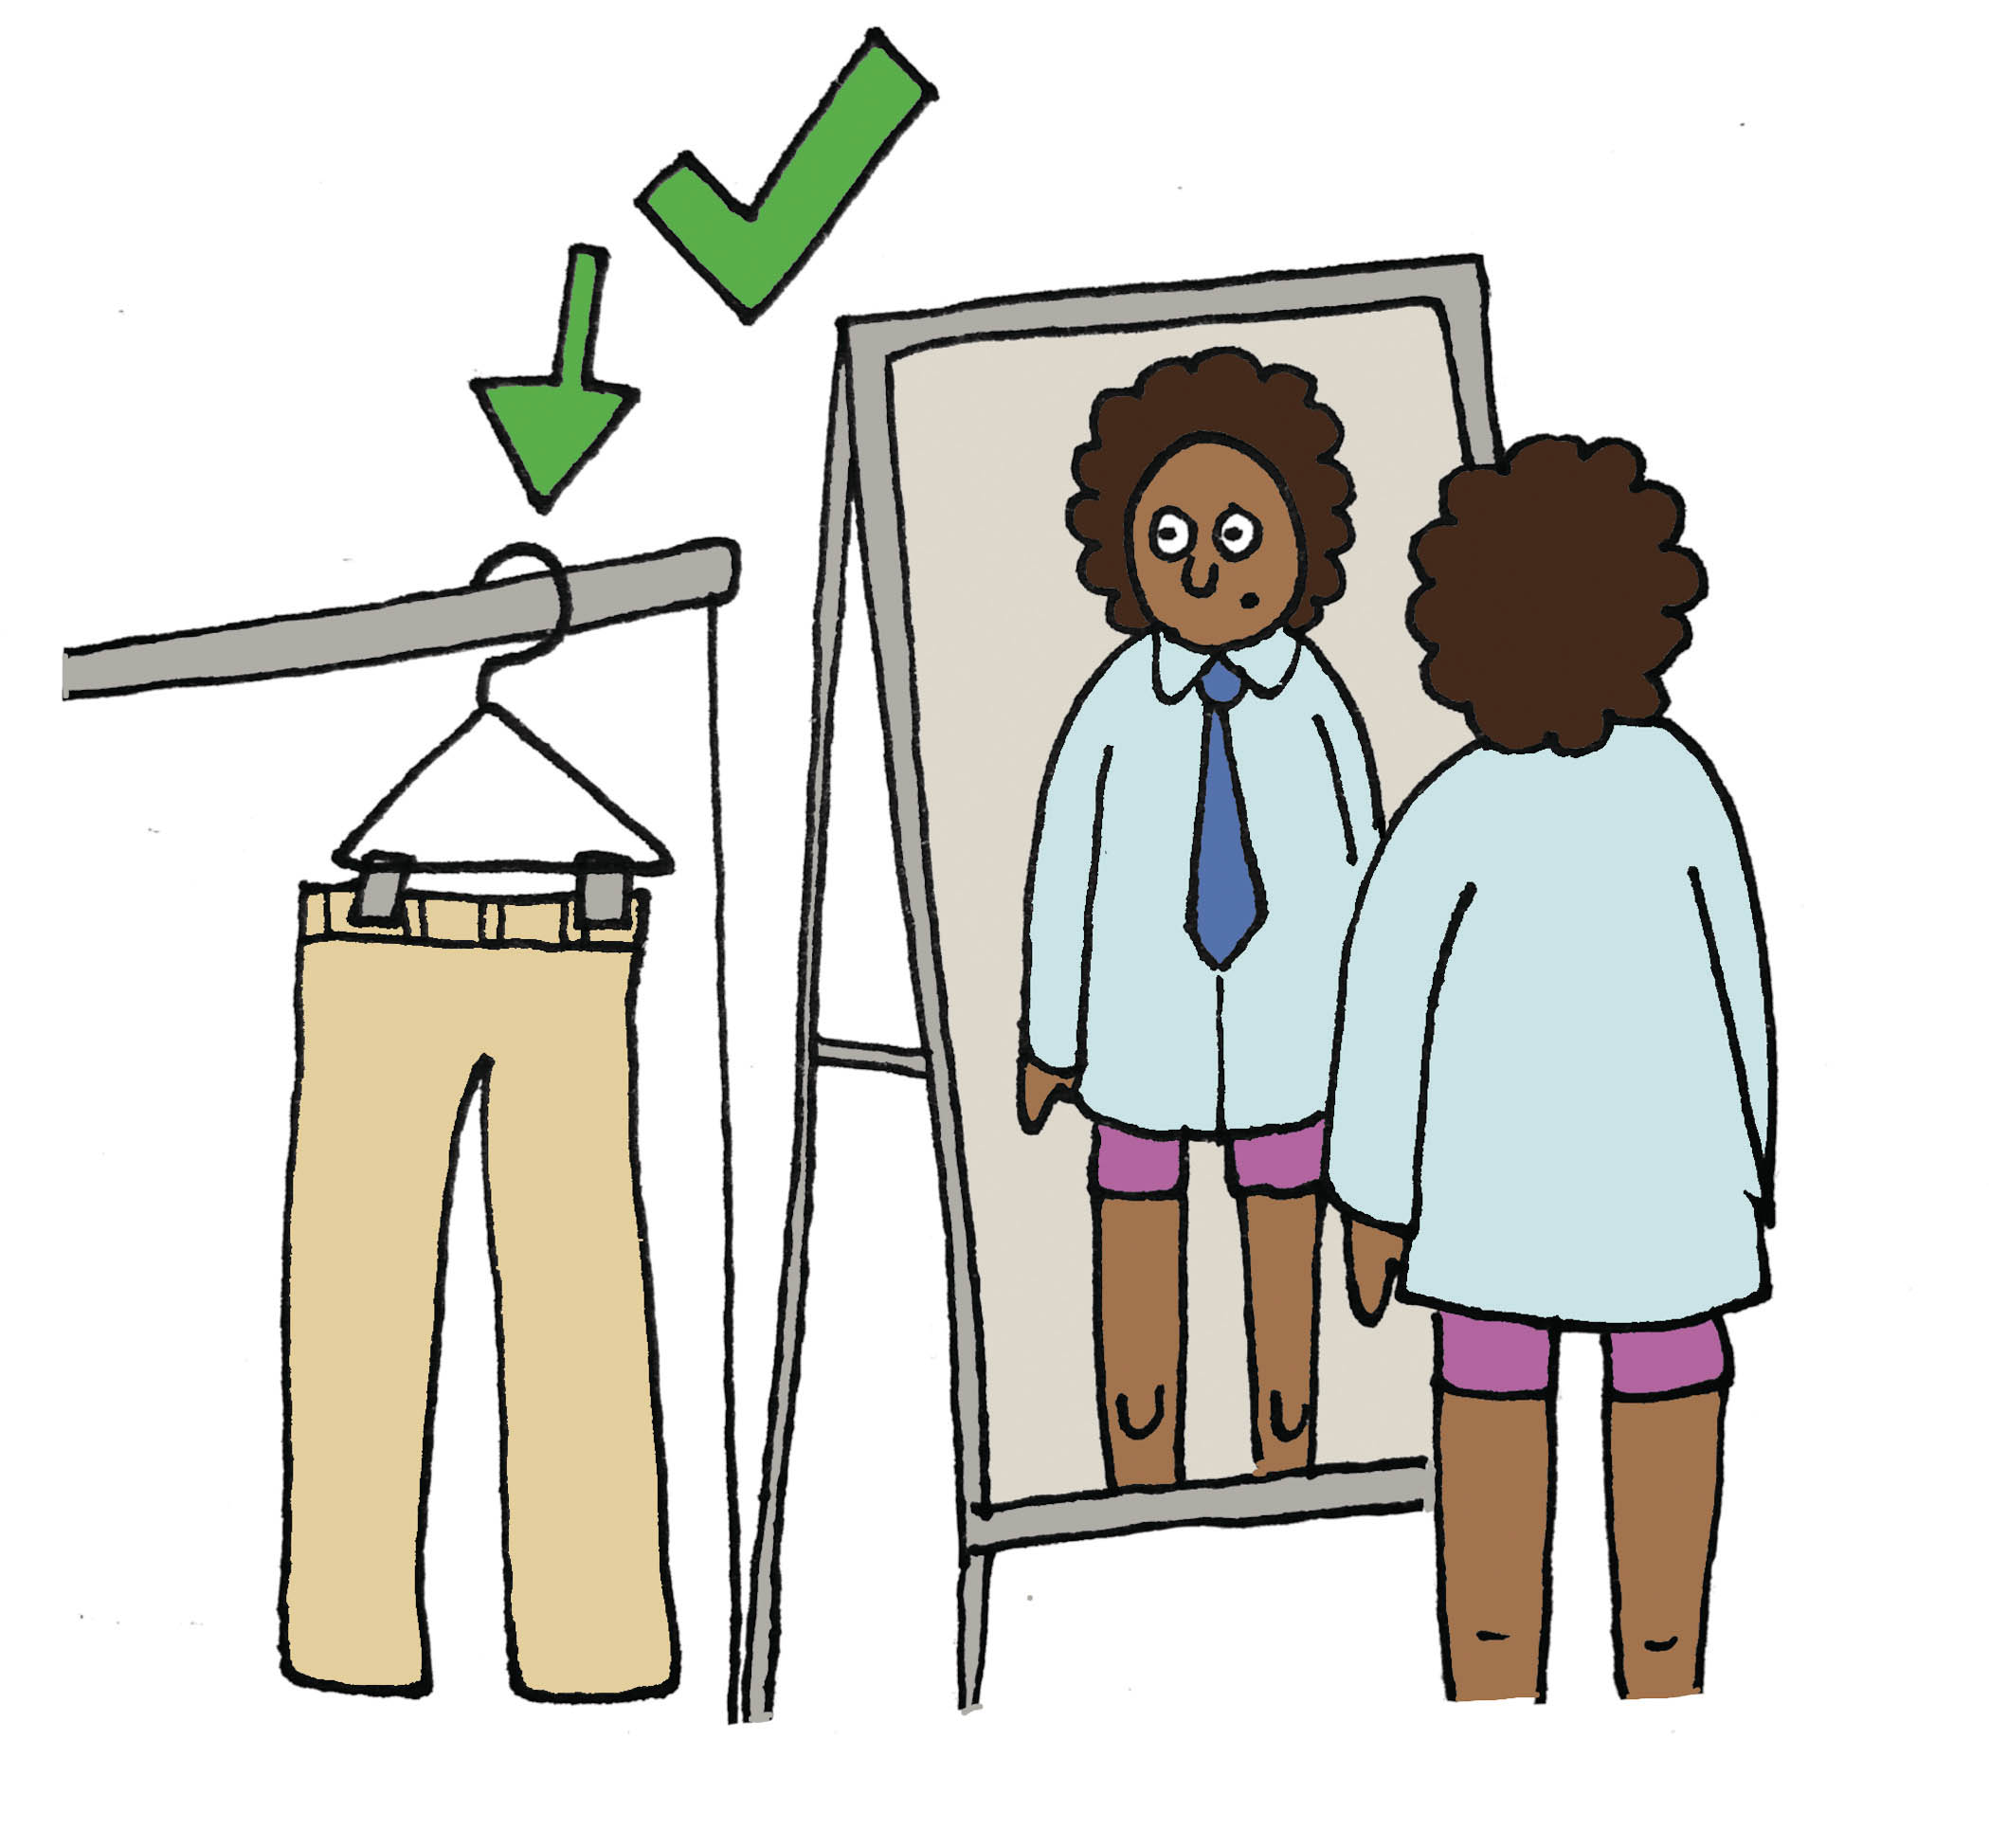 Getting dressed. (Illustration by Marie-Danielle Smith)